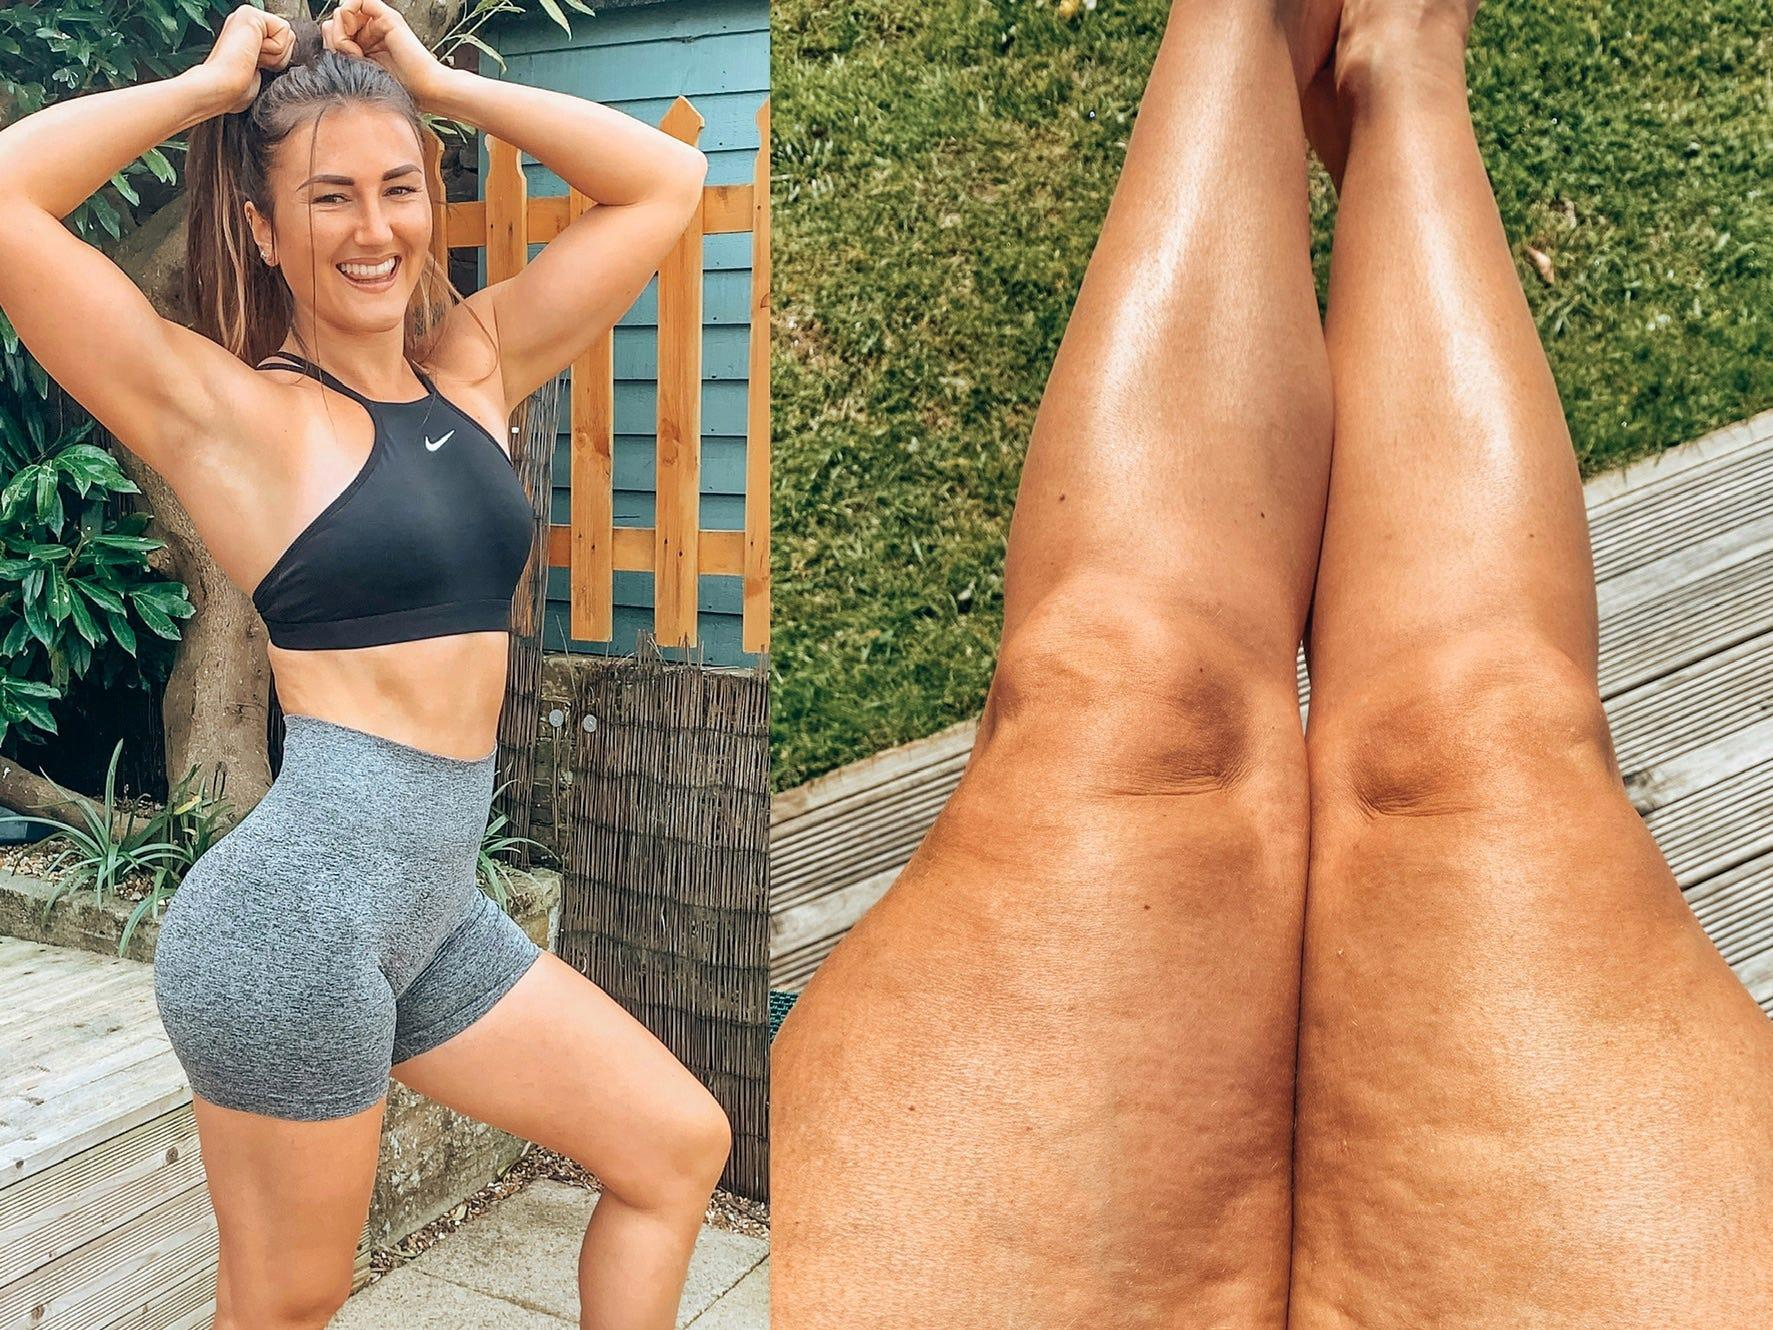 Instagram Fitness Influencer Hayley Madigan Shows Cellulite And Flaws Insider